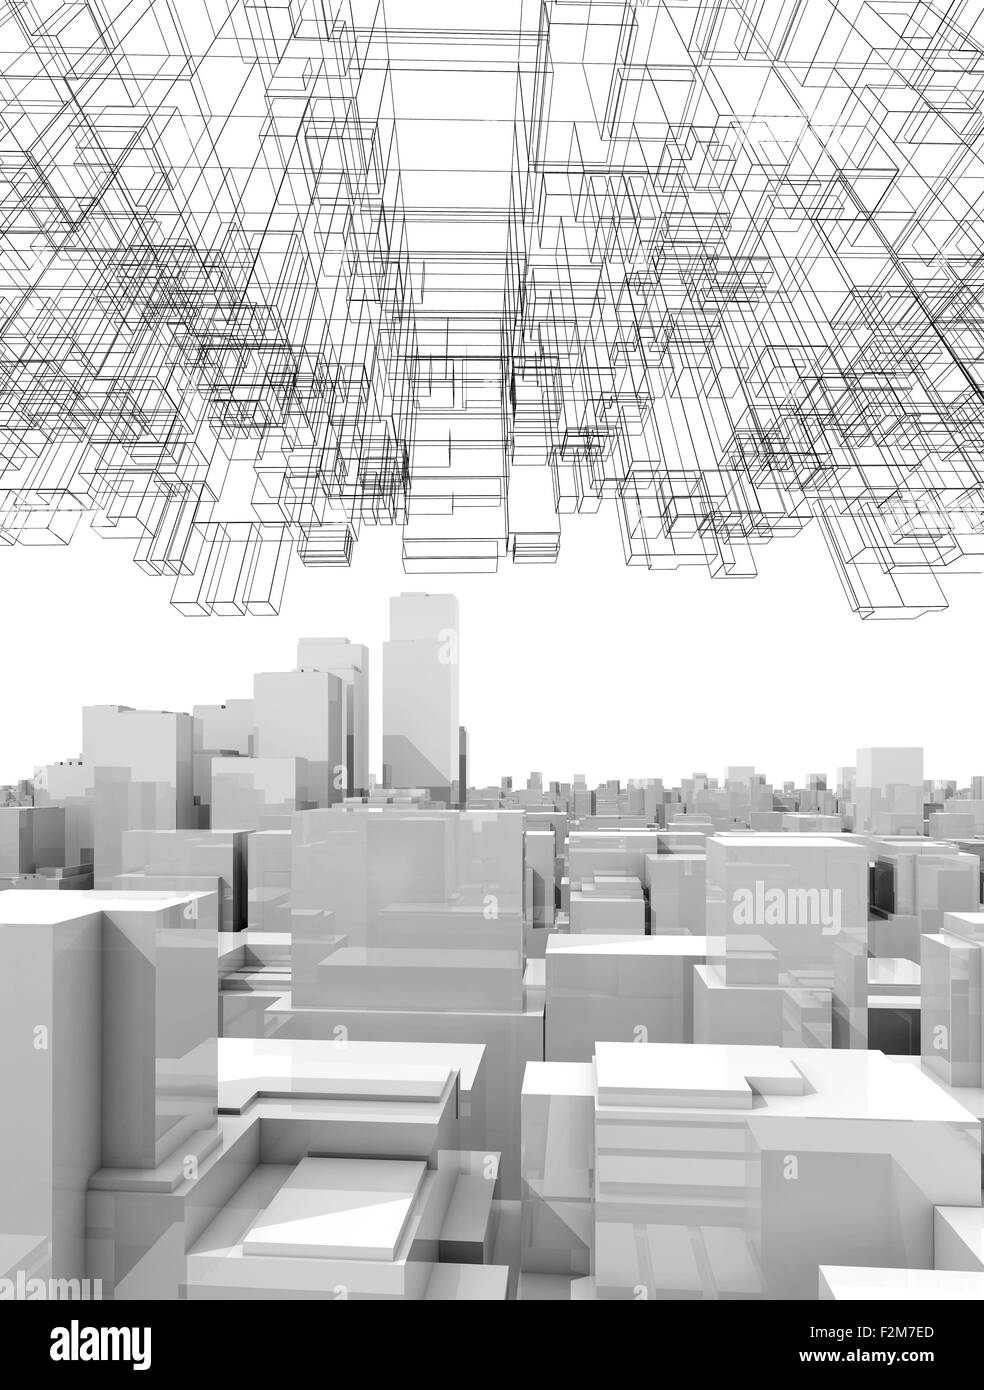 White Digital Cityscape With Tall Skyscrapers And Abstract Wire Picture Frame Diagram Structure In The Sky 3d Illustration